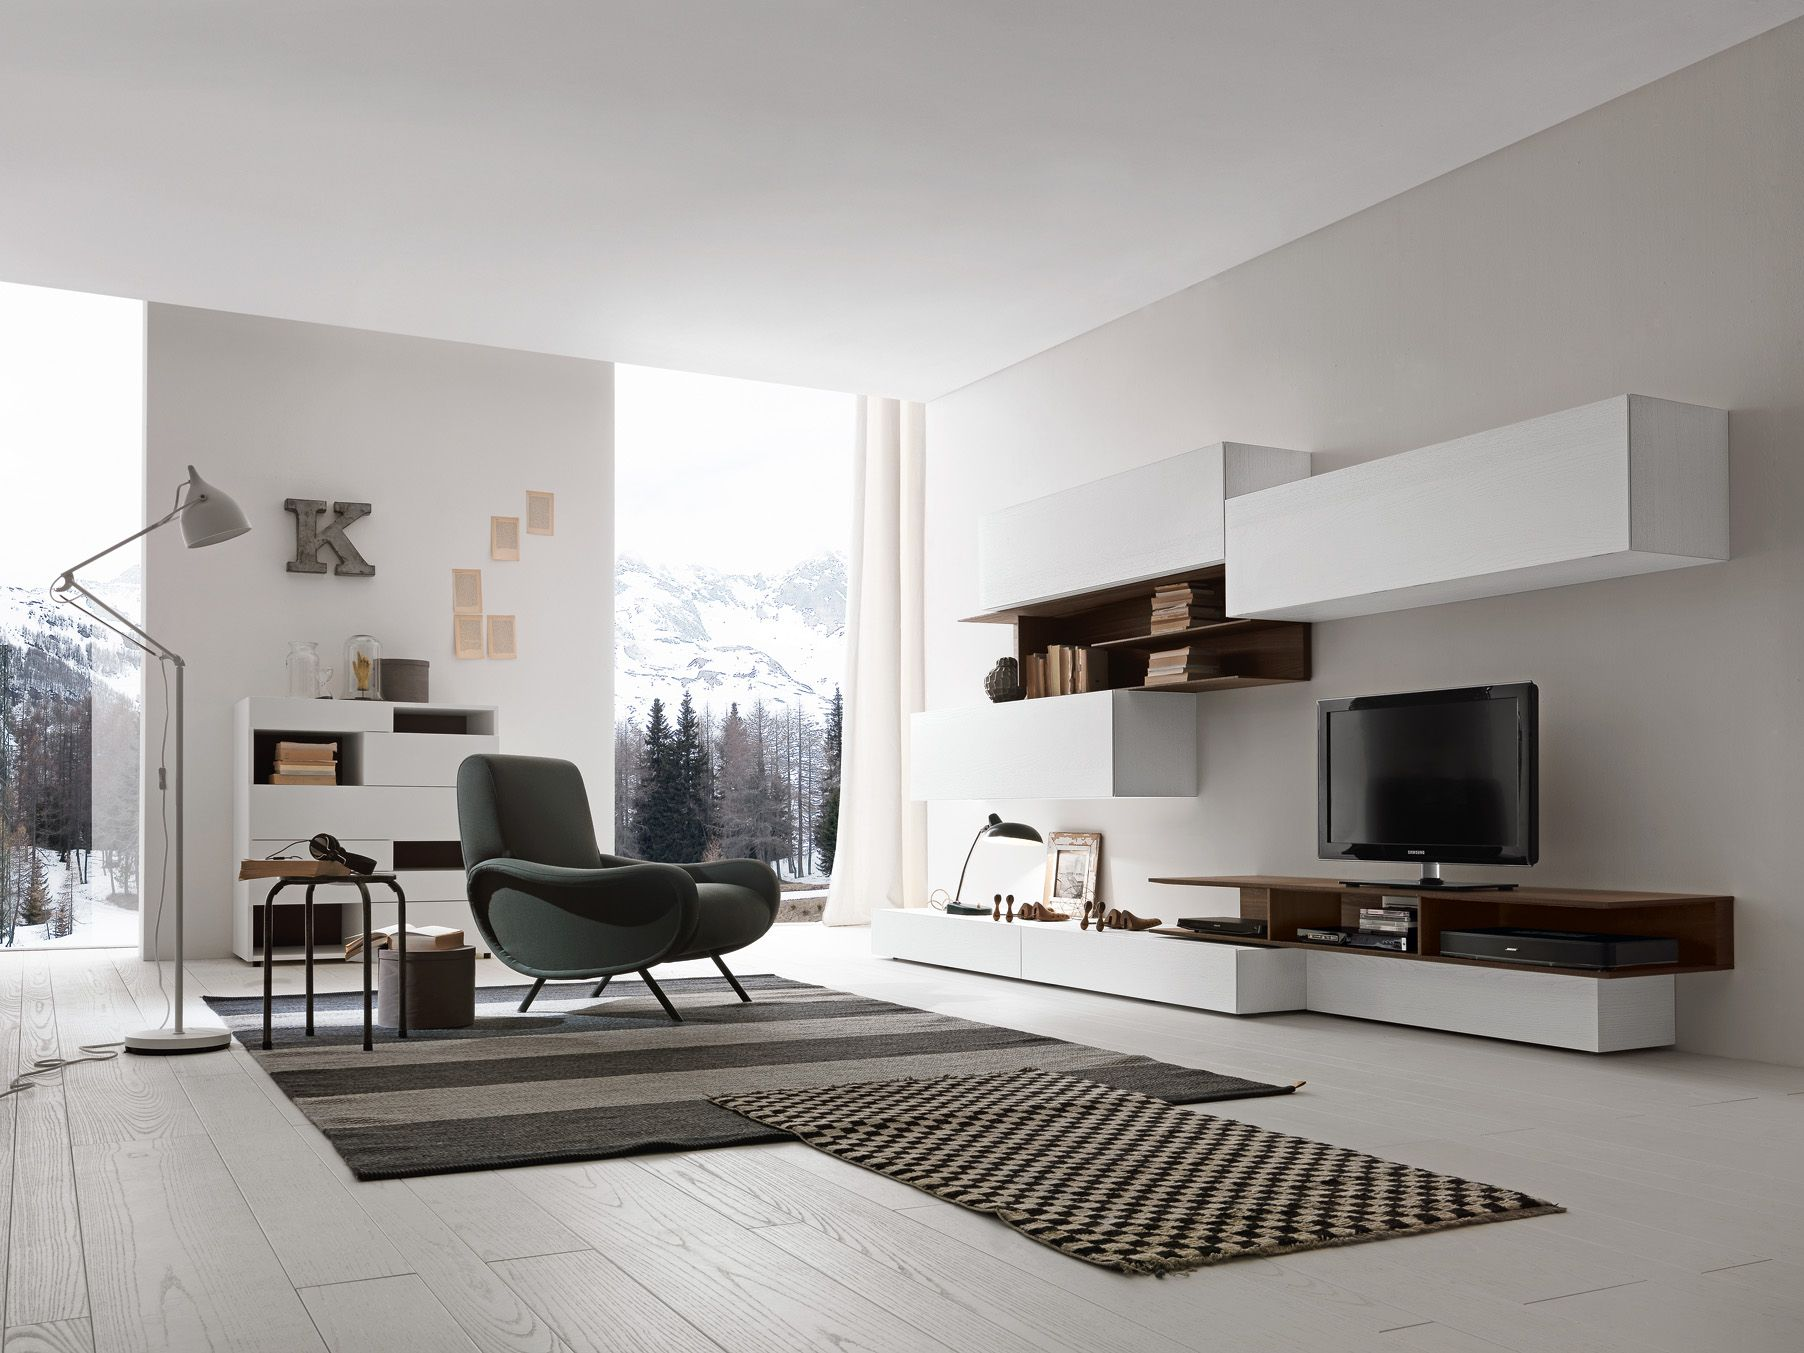 presotto base and wall units in bianco candido color